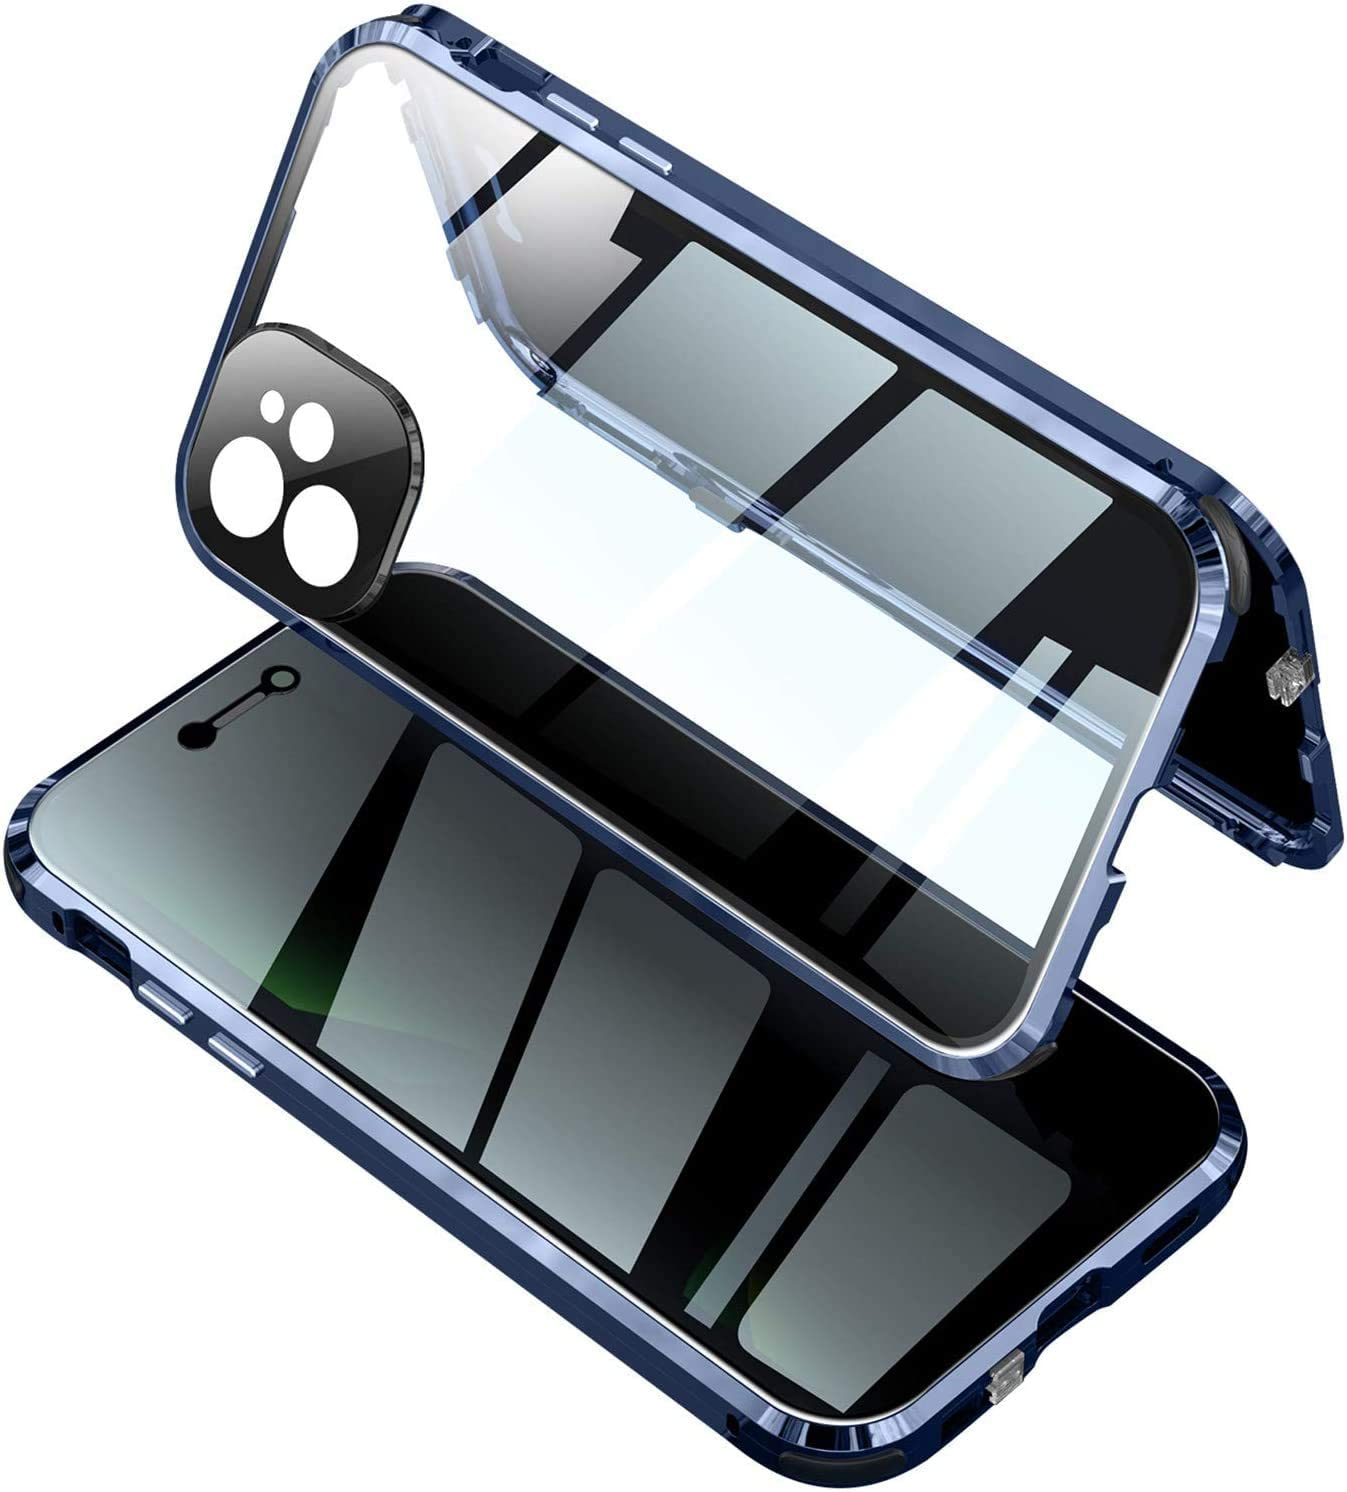 Anti Peeping Clear Case for iPhone 11 Pro Max,Safety Buckle Lock with Privacy Screen Protector-Camera Lens Protector- Magnetic Metal 360 Full Body Anti Spy Cover (iPhone 11 Pro Max, Pacific Blue)